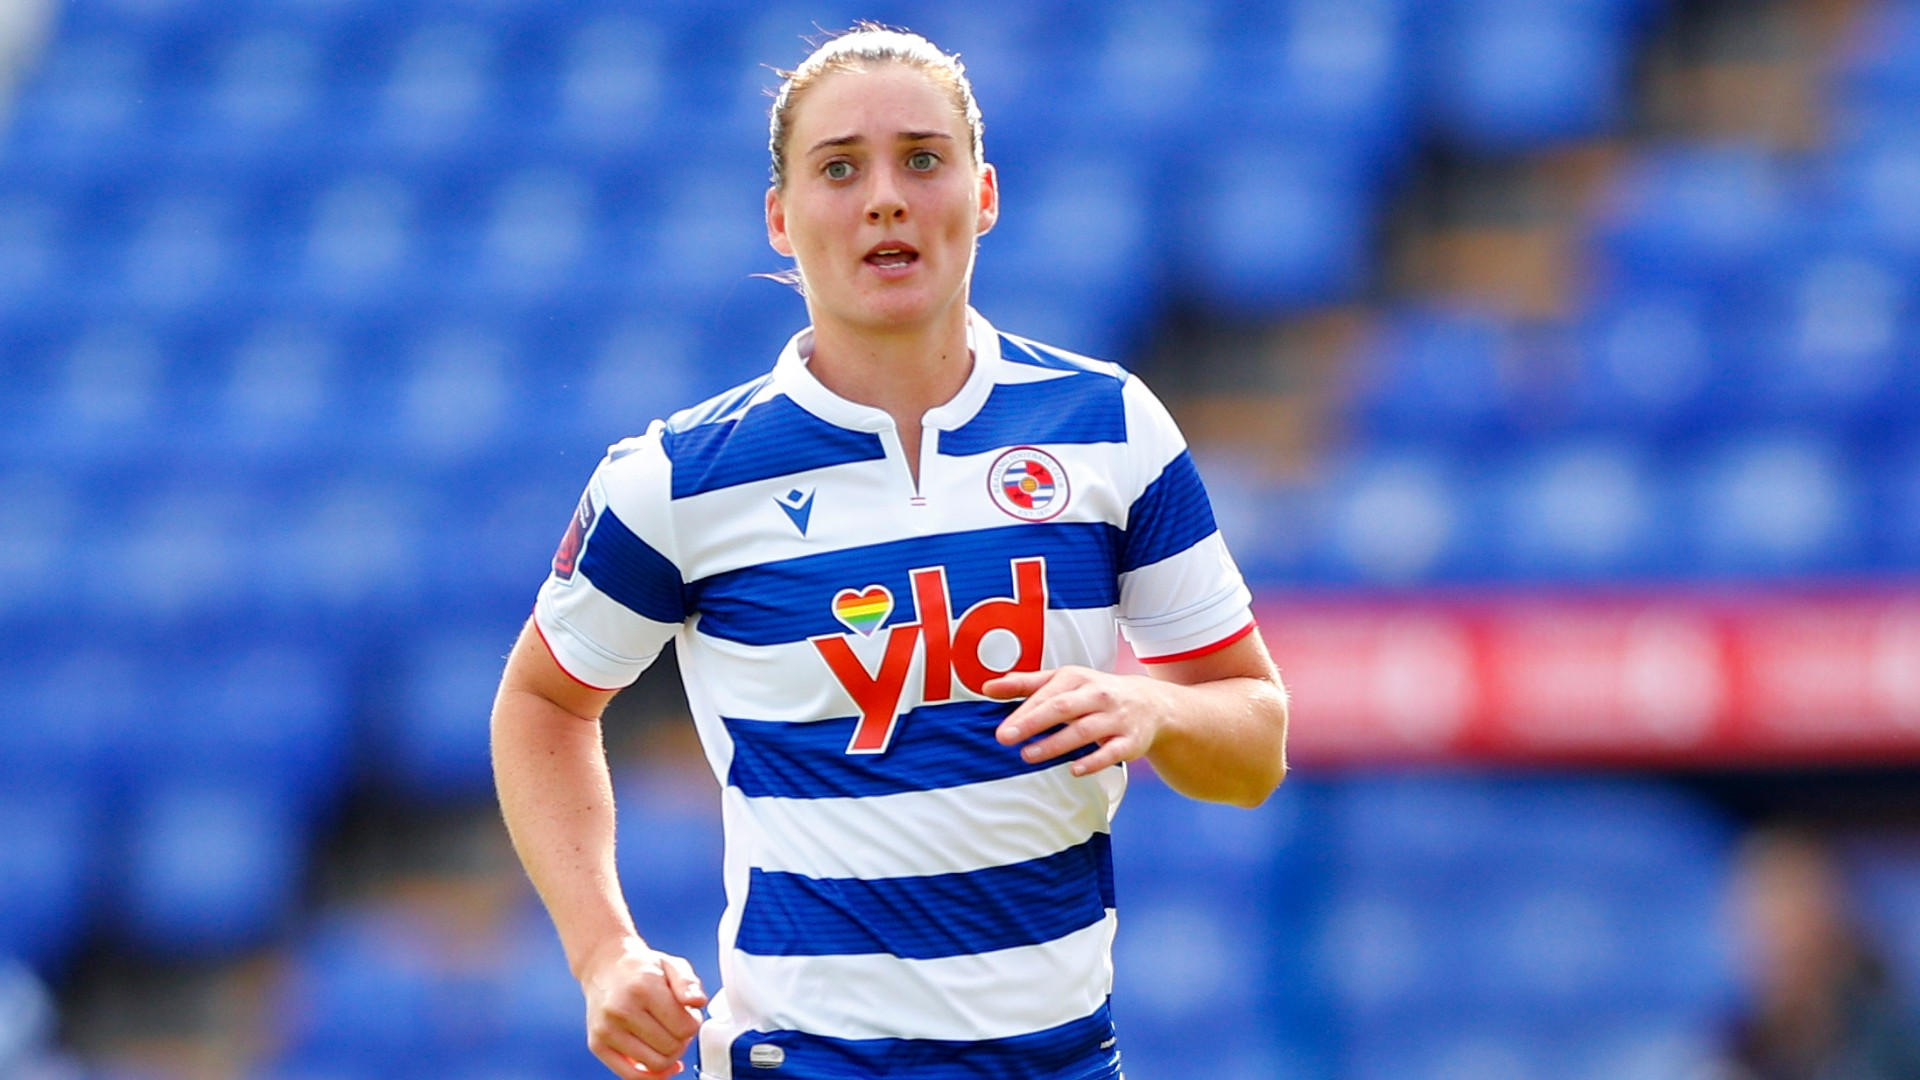 Orlando Pride announce signing of England star Moore